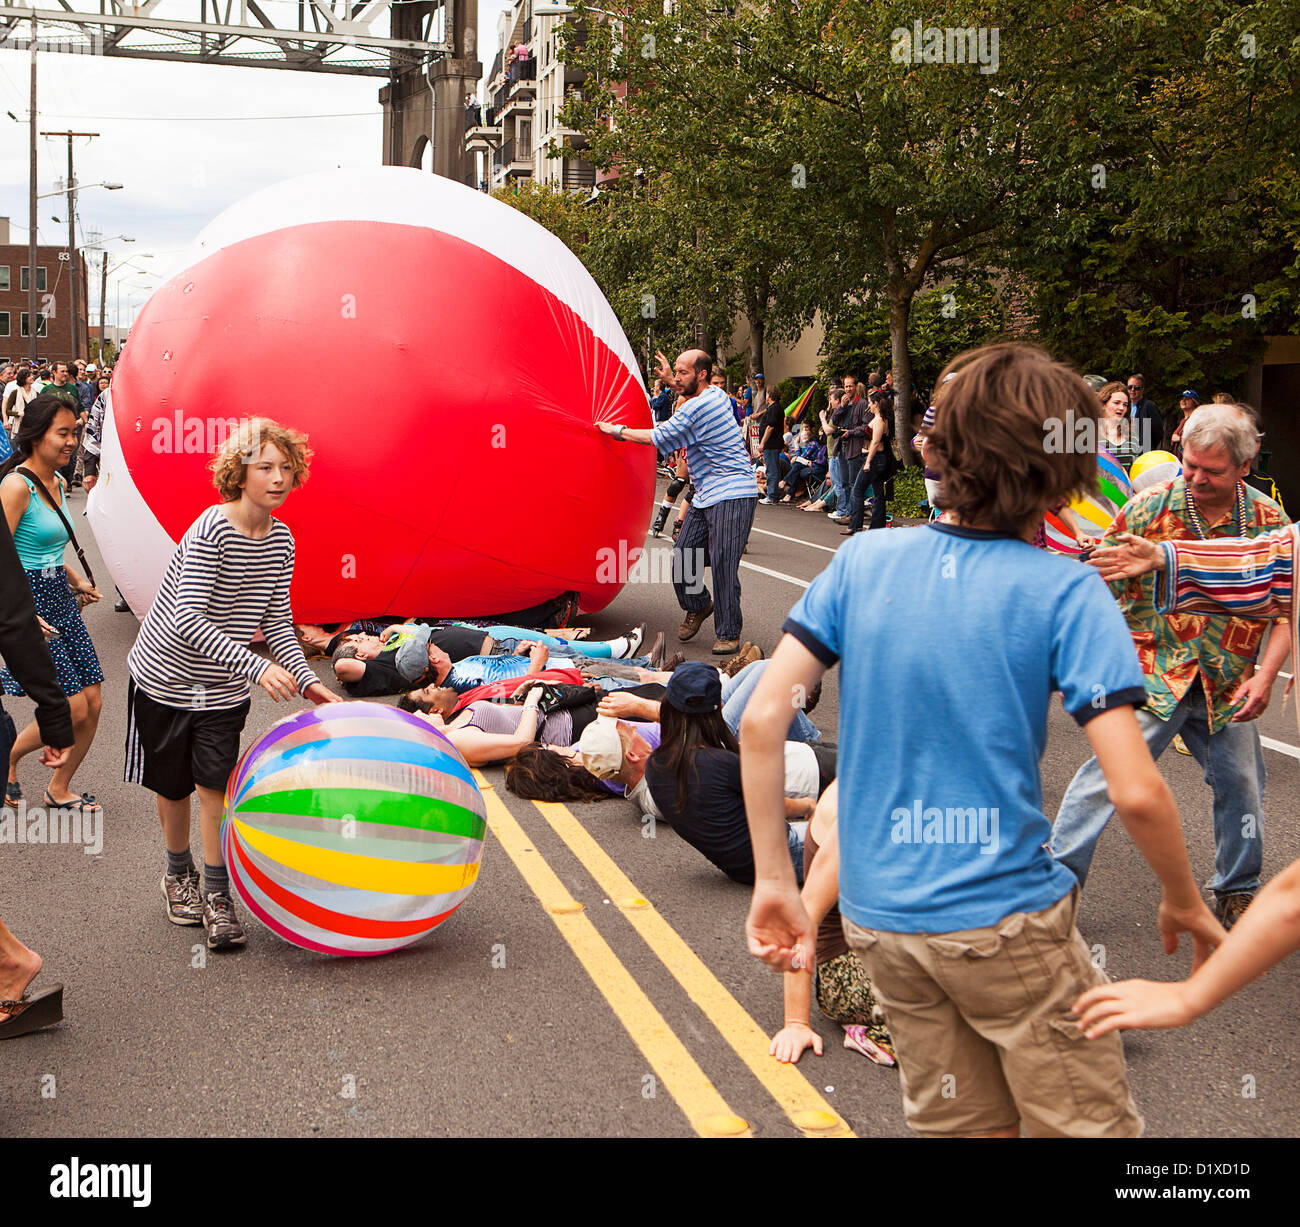 Audience Participation In Fremont Parade - Stock Image